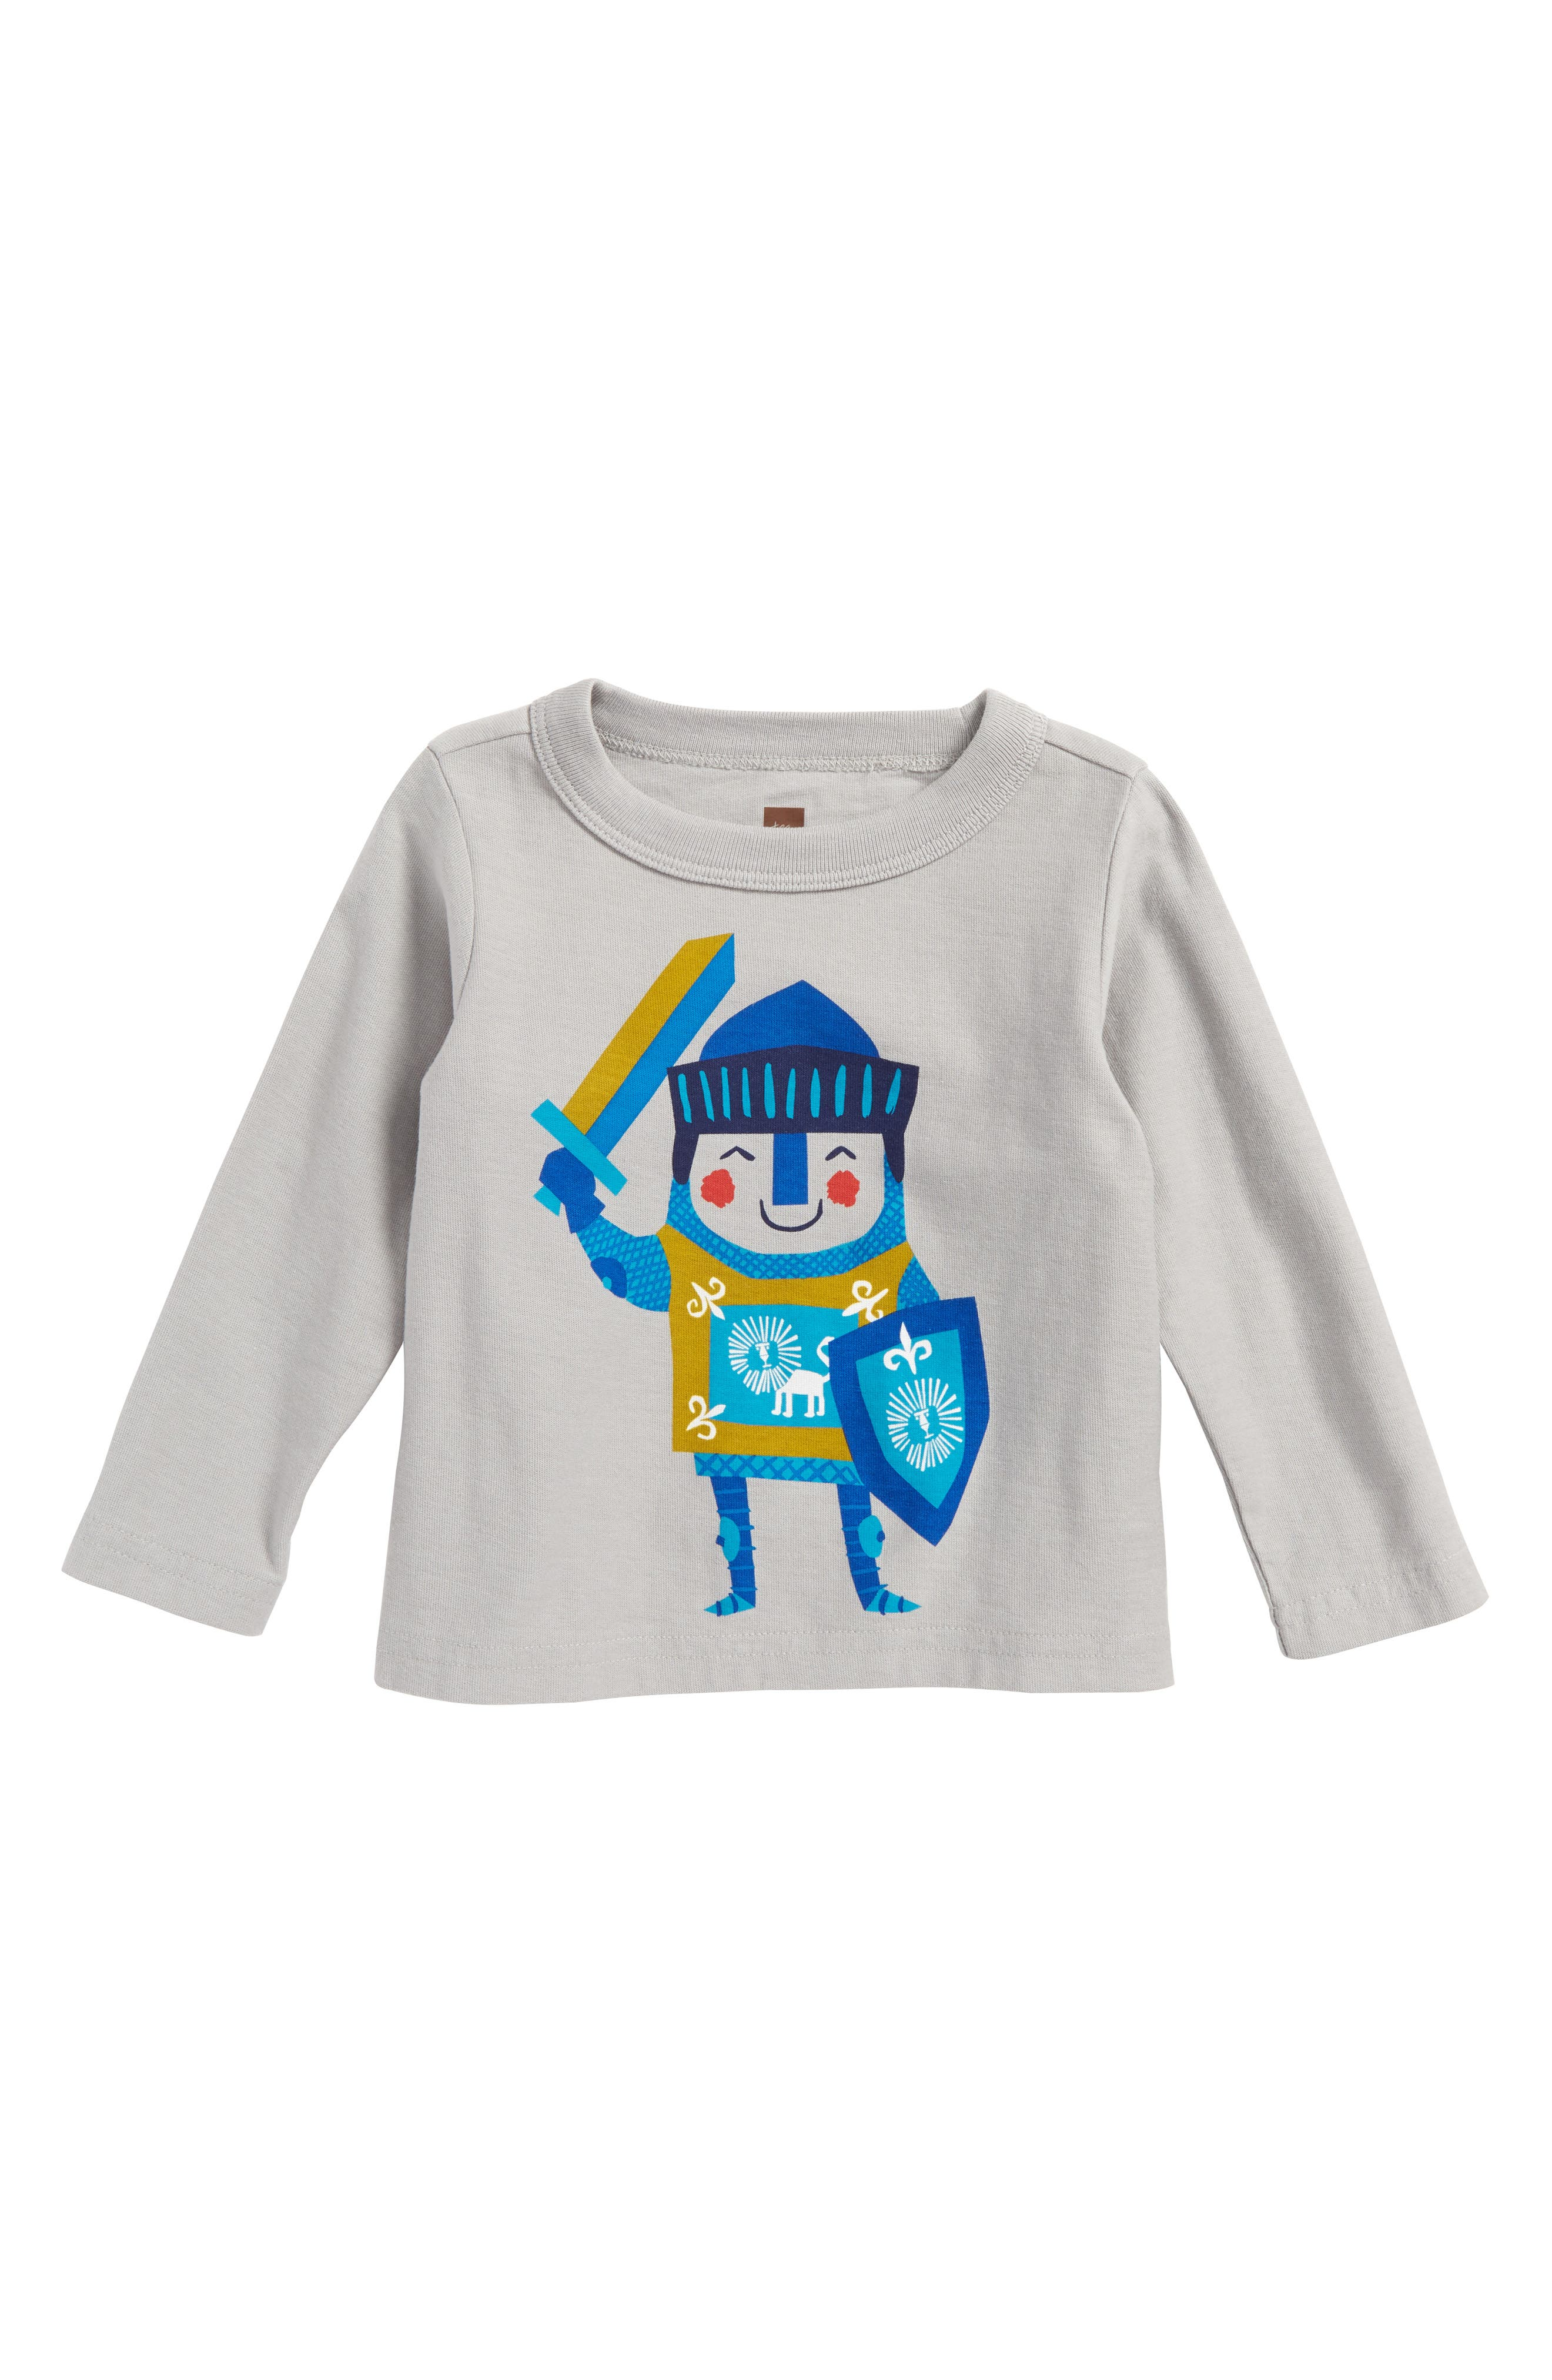 Little Knight T-Shirt,                         Main,                         color, Storm Grey